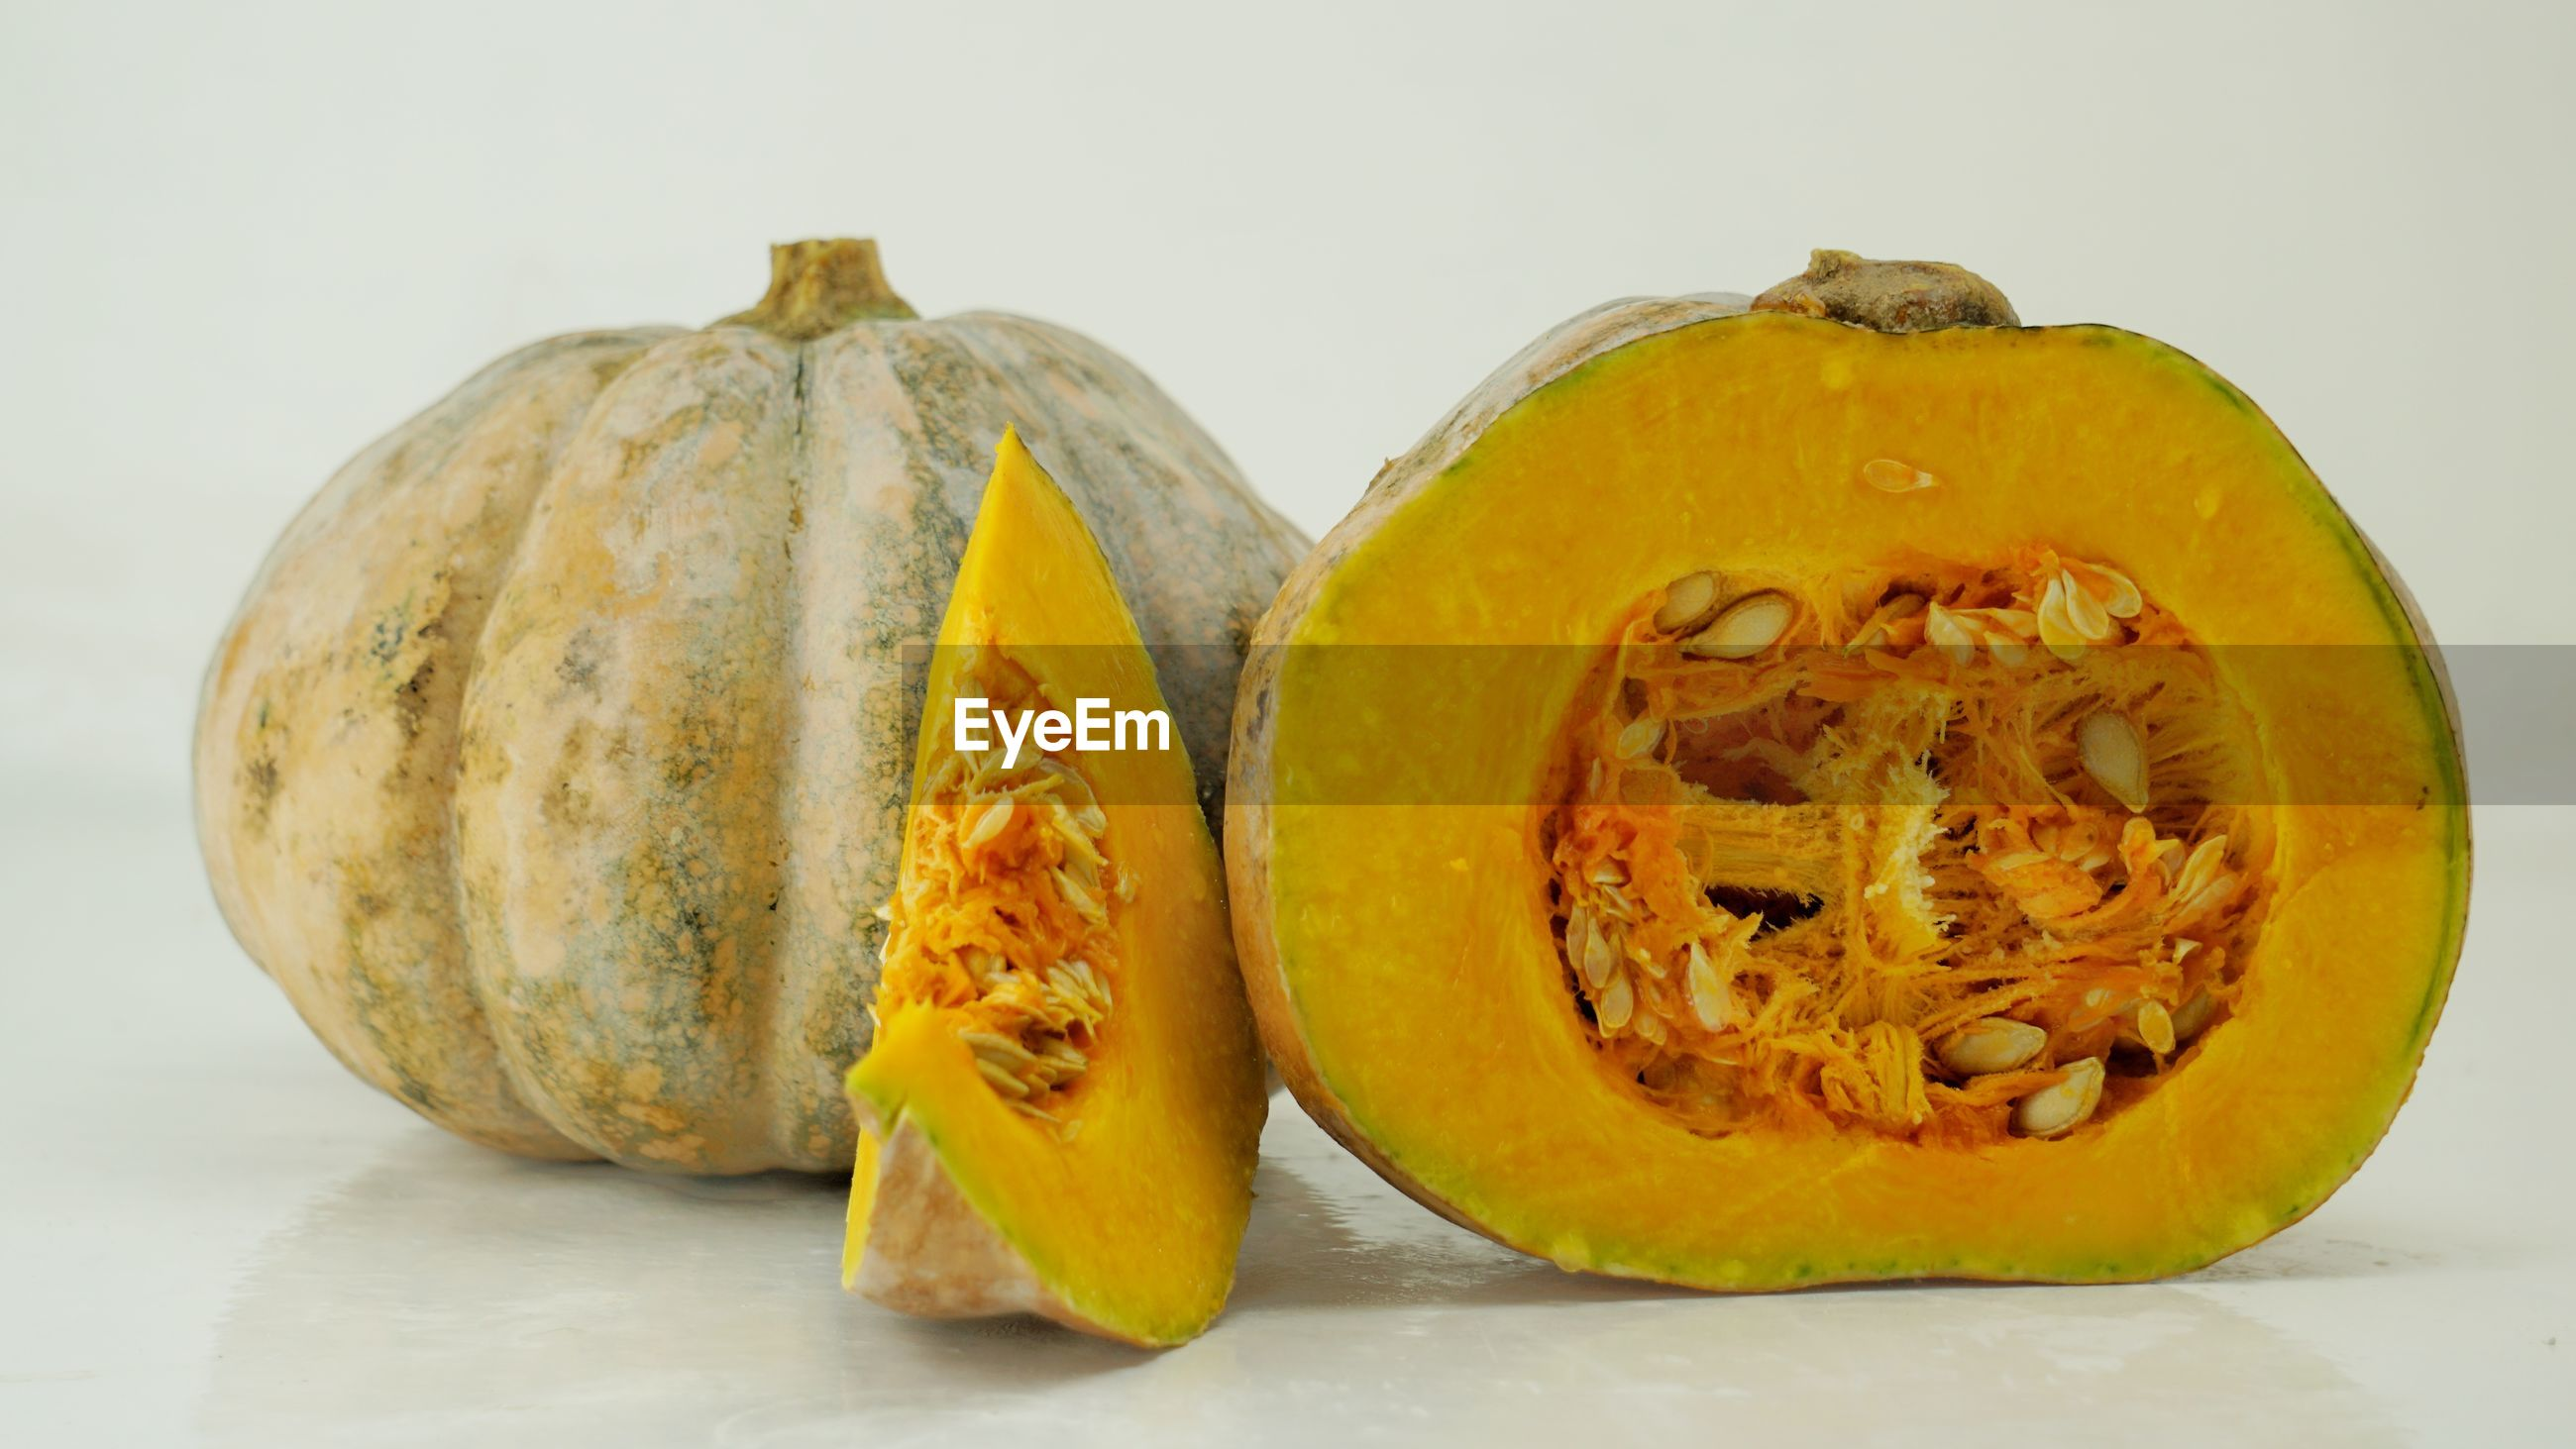 CLOSE-UP OF PUMPKIN AGAINST GRAY BACKGROUND